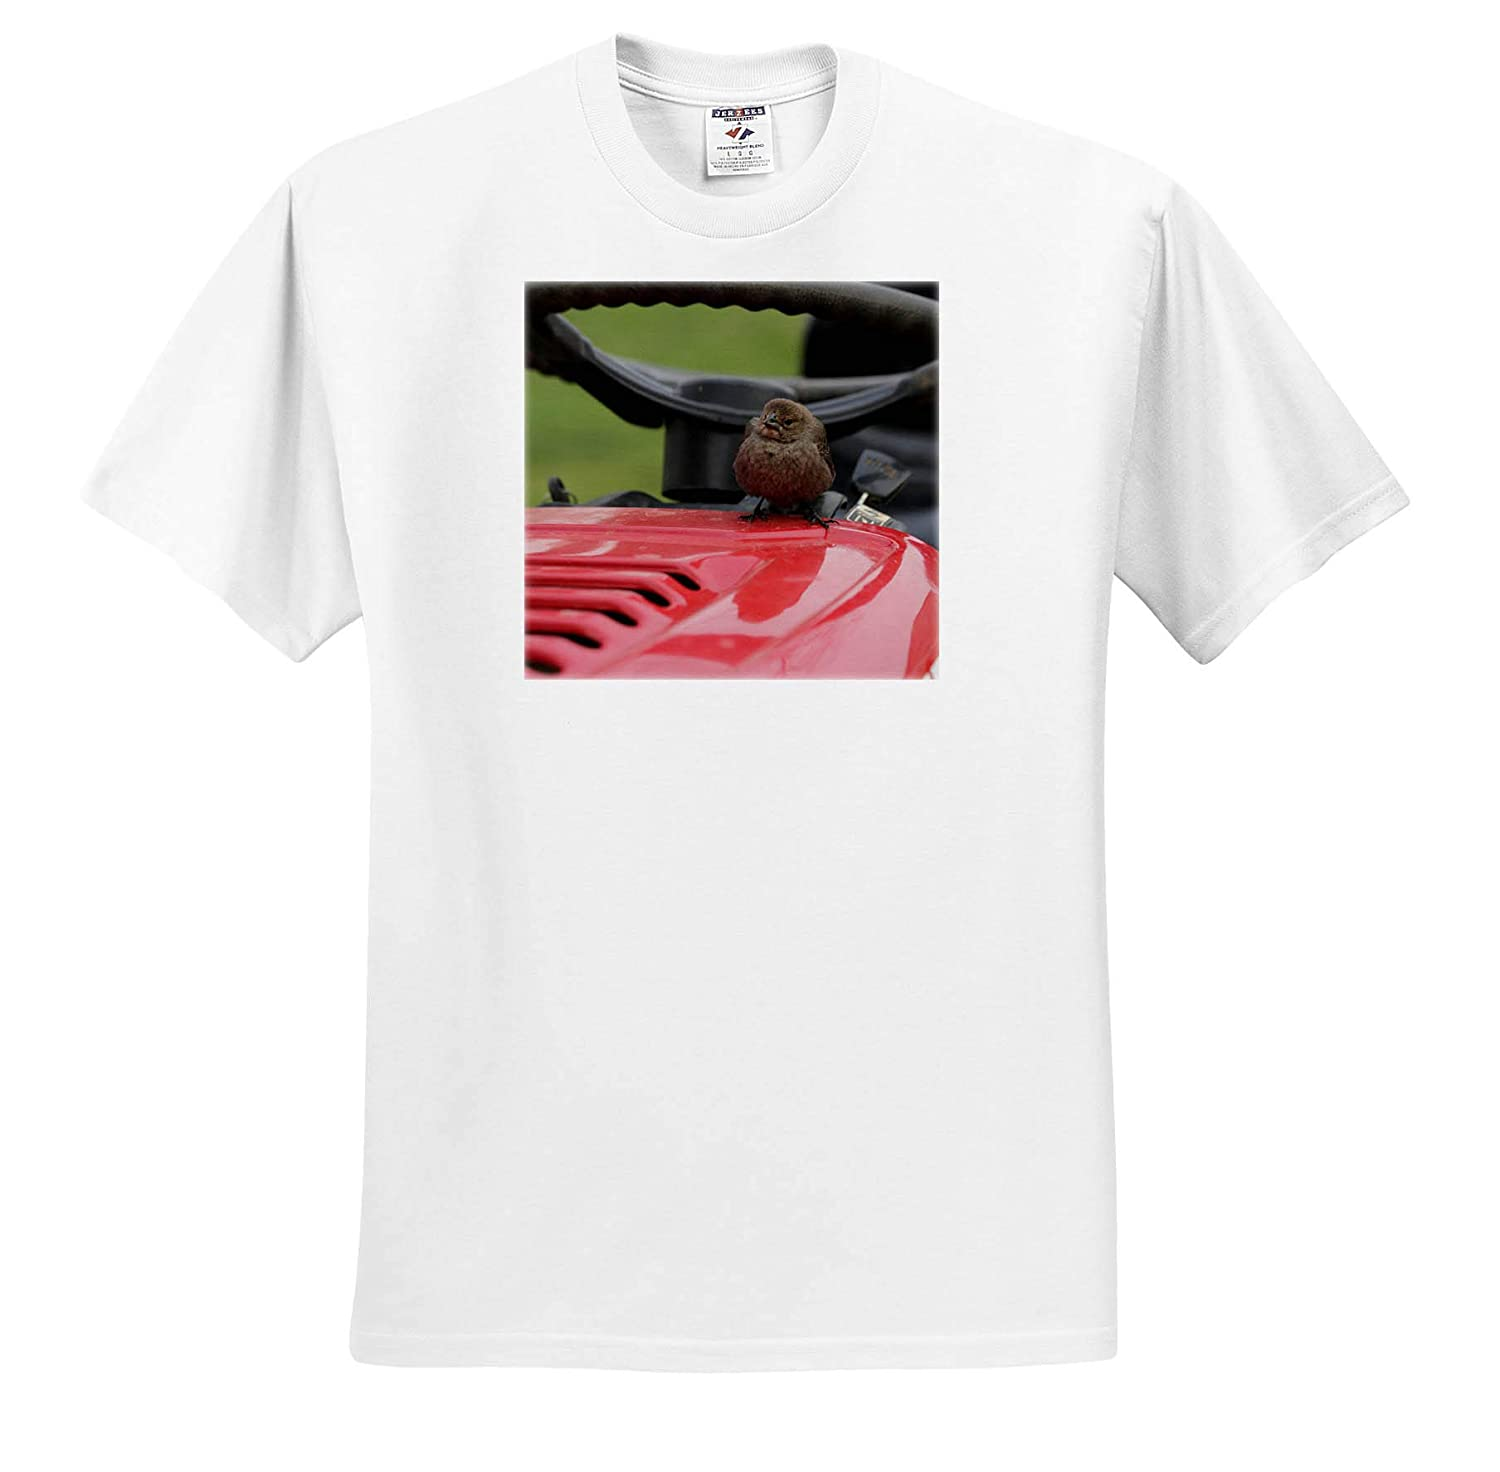 - T-Shirts Birds Photograph of a Silly Female Cowbird Taking a Ride on a Rider Mower 3dRose Stamp City